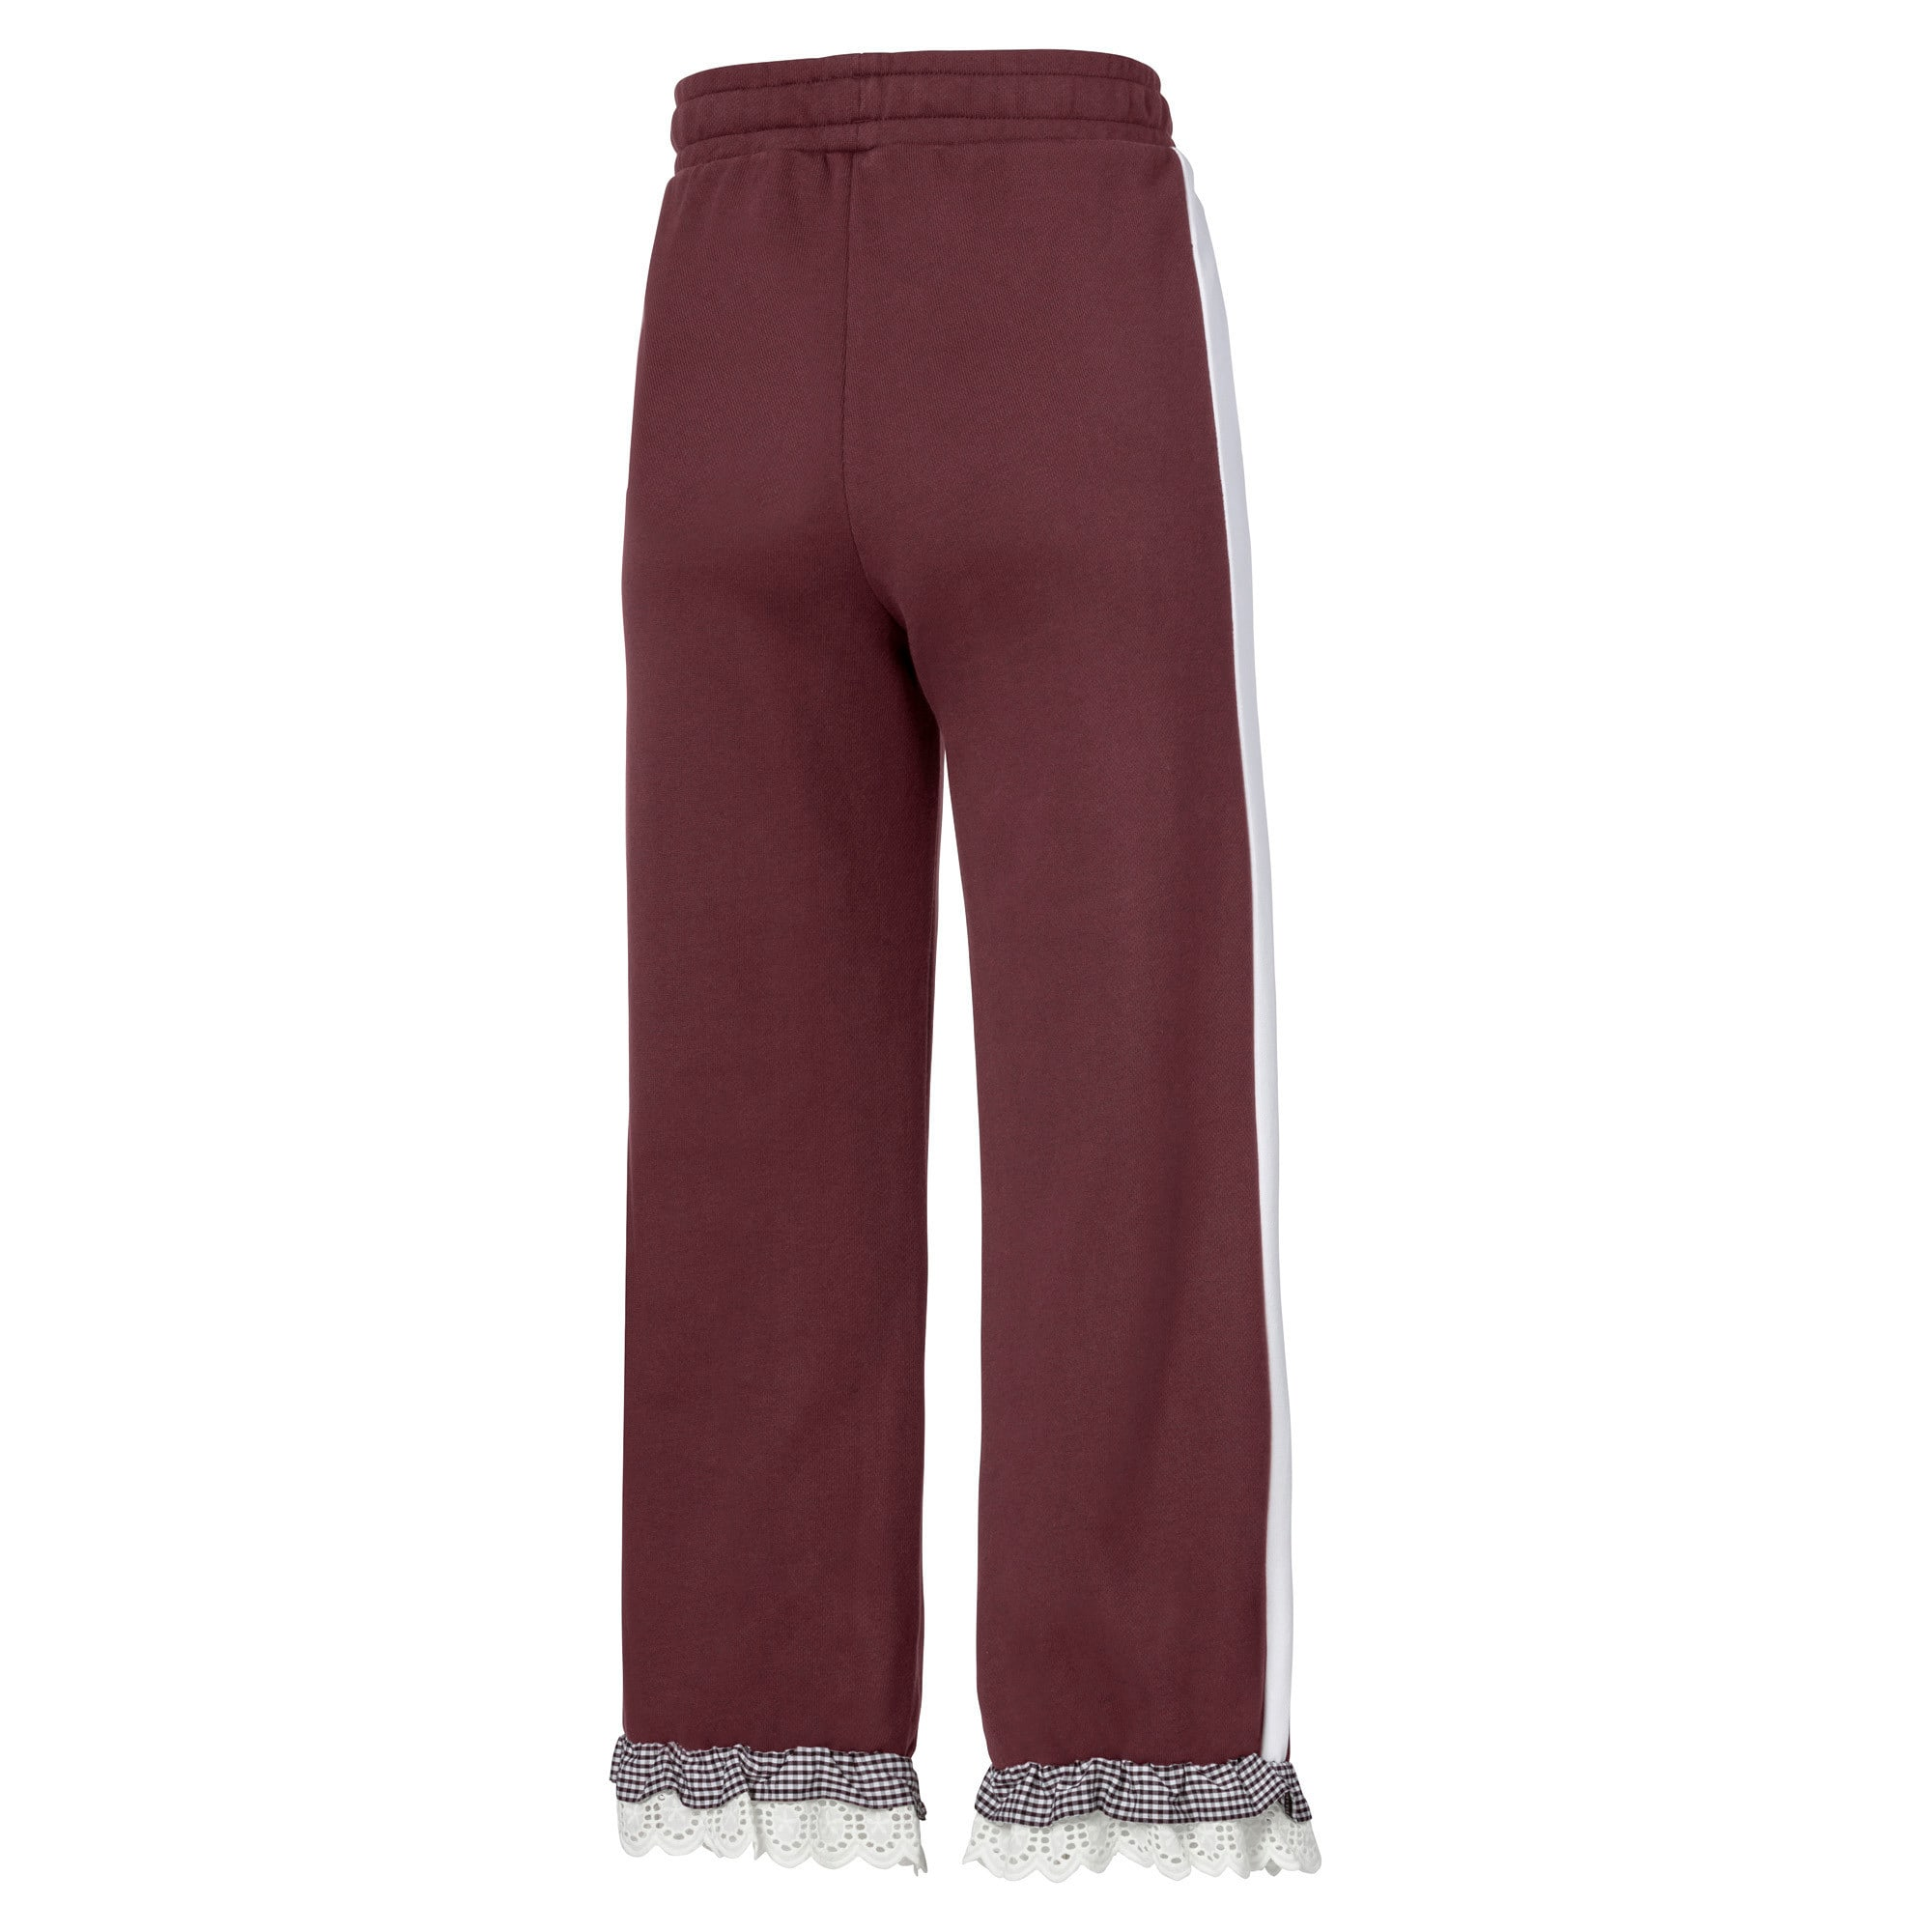 Thumbnail 5 of PUMA x TYAKASHA Women's Culottes, Vineyard Wine, medium